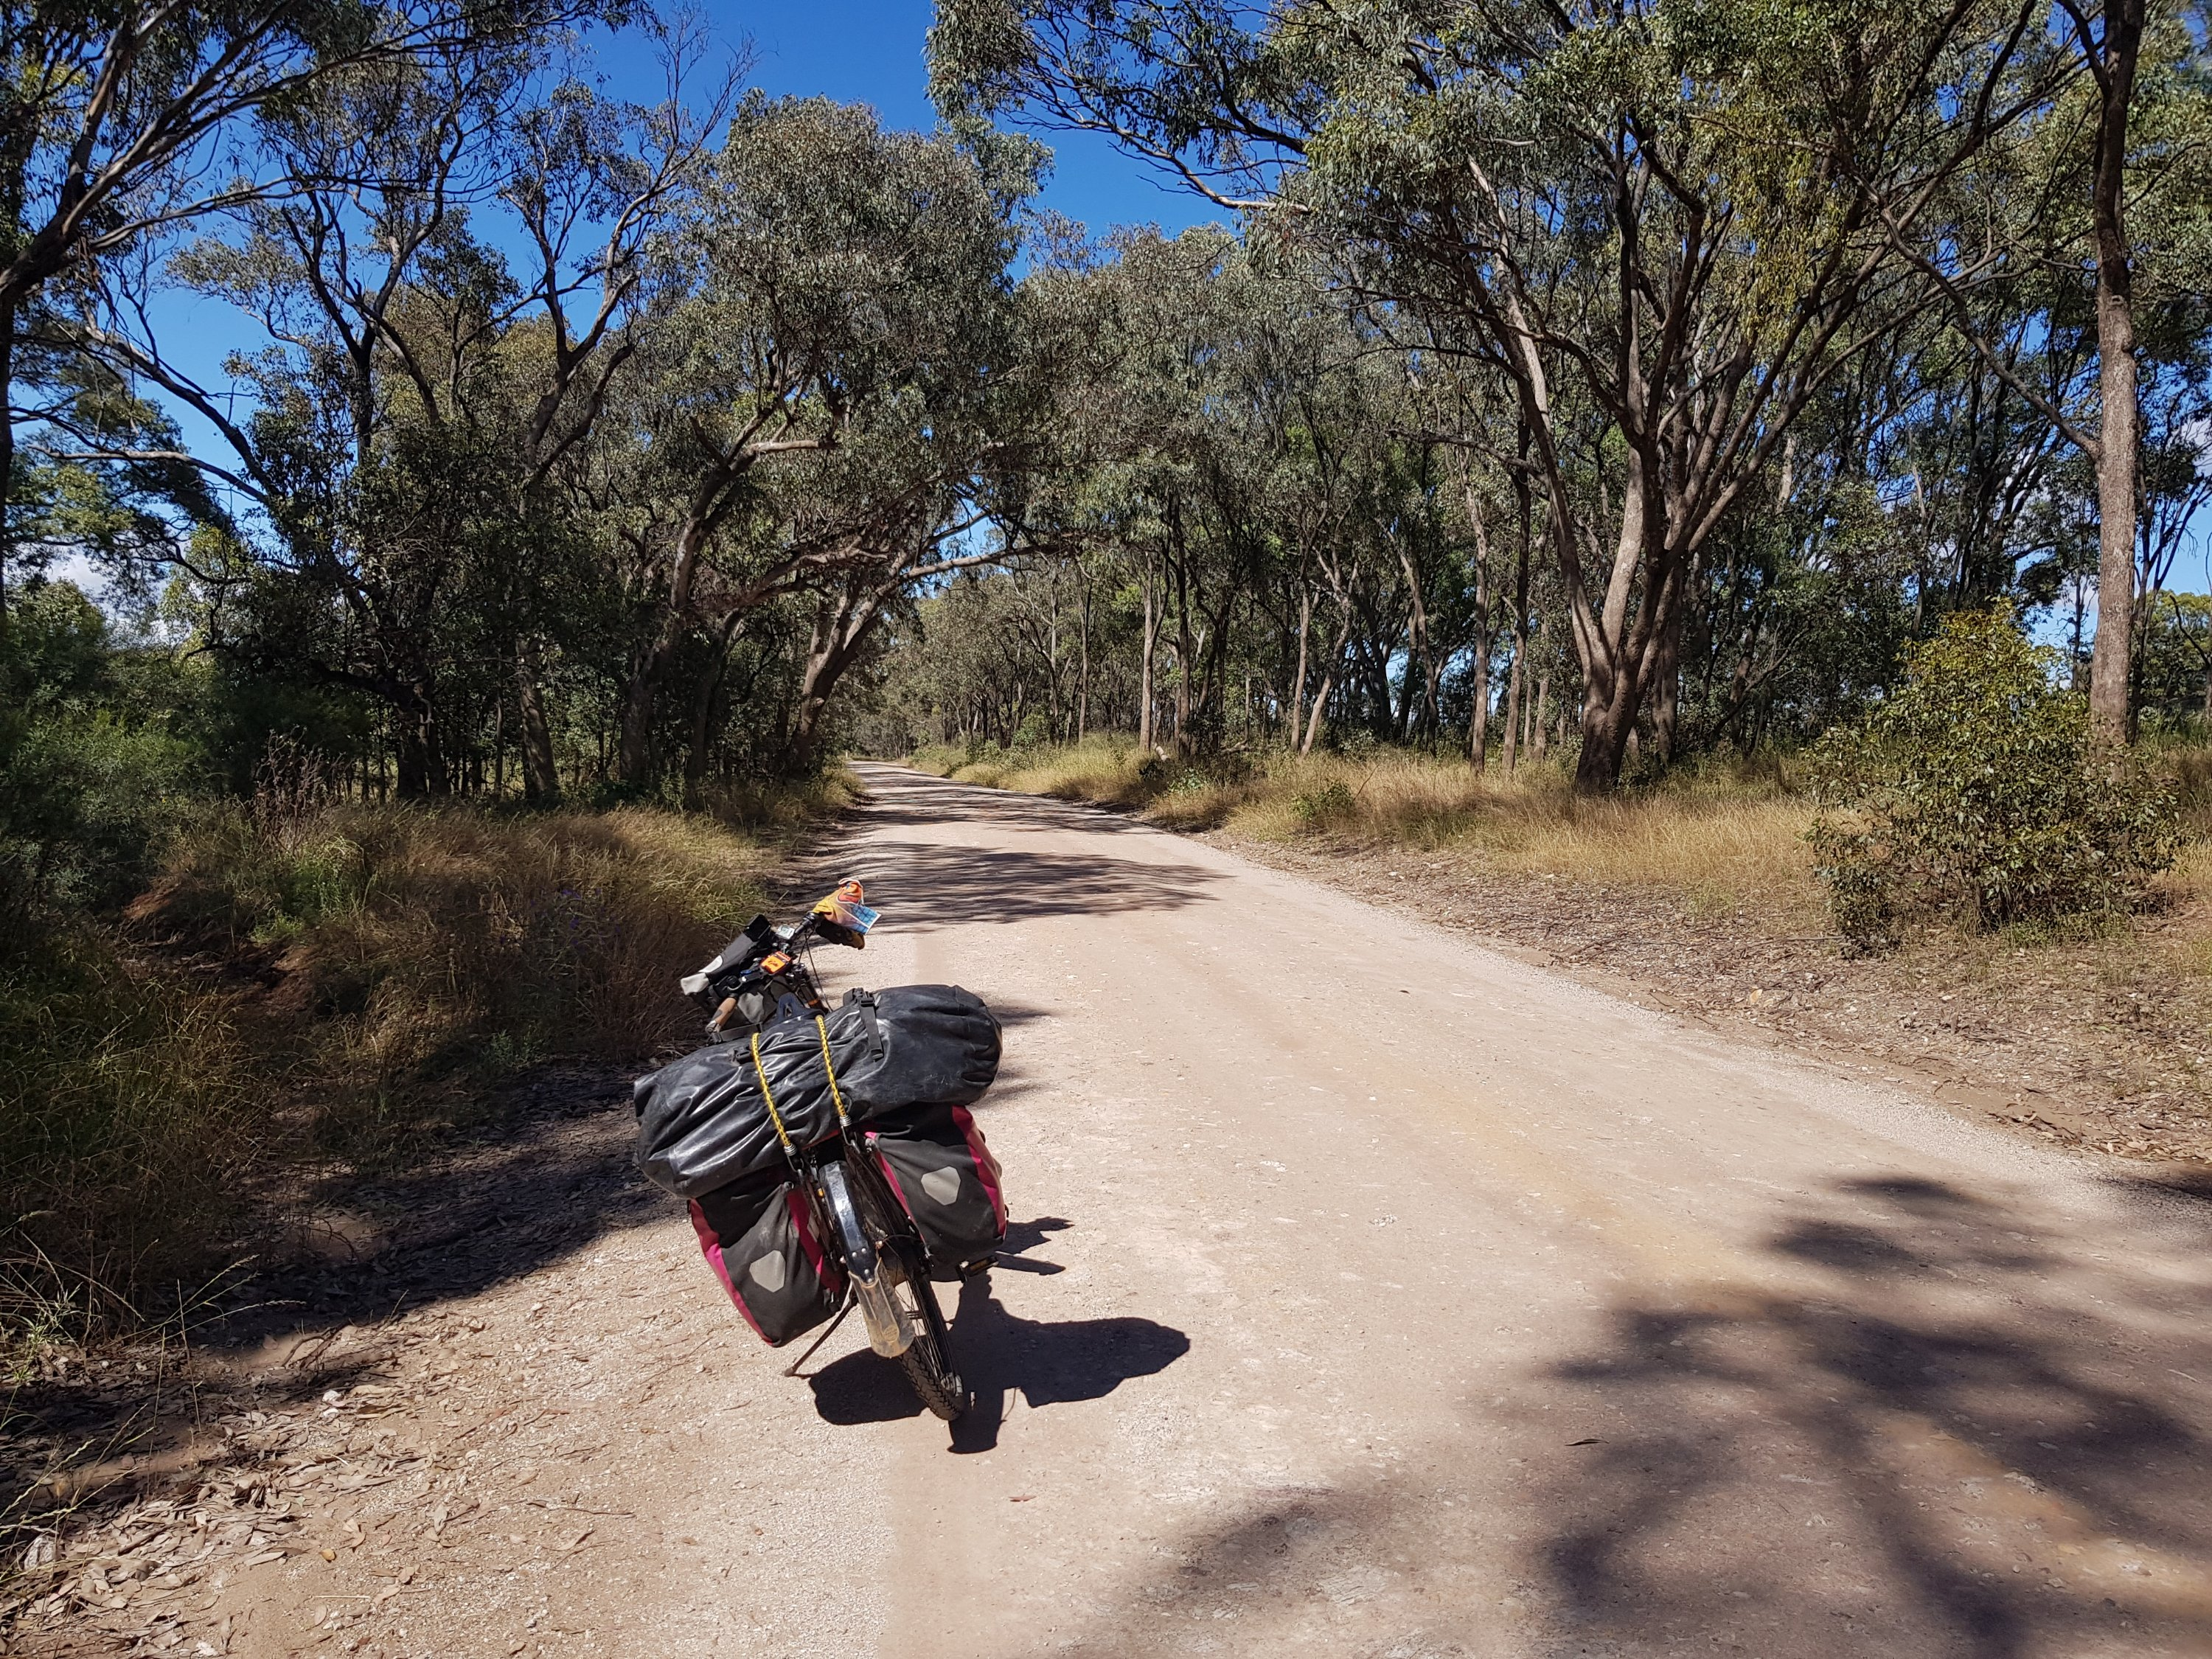 The road to Gulgong